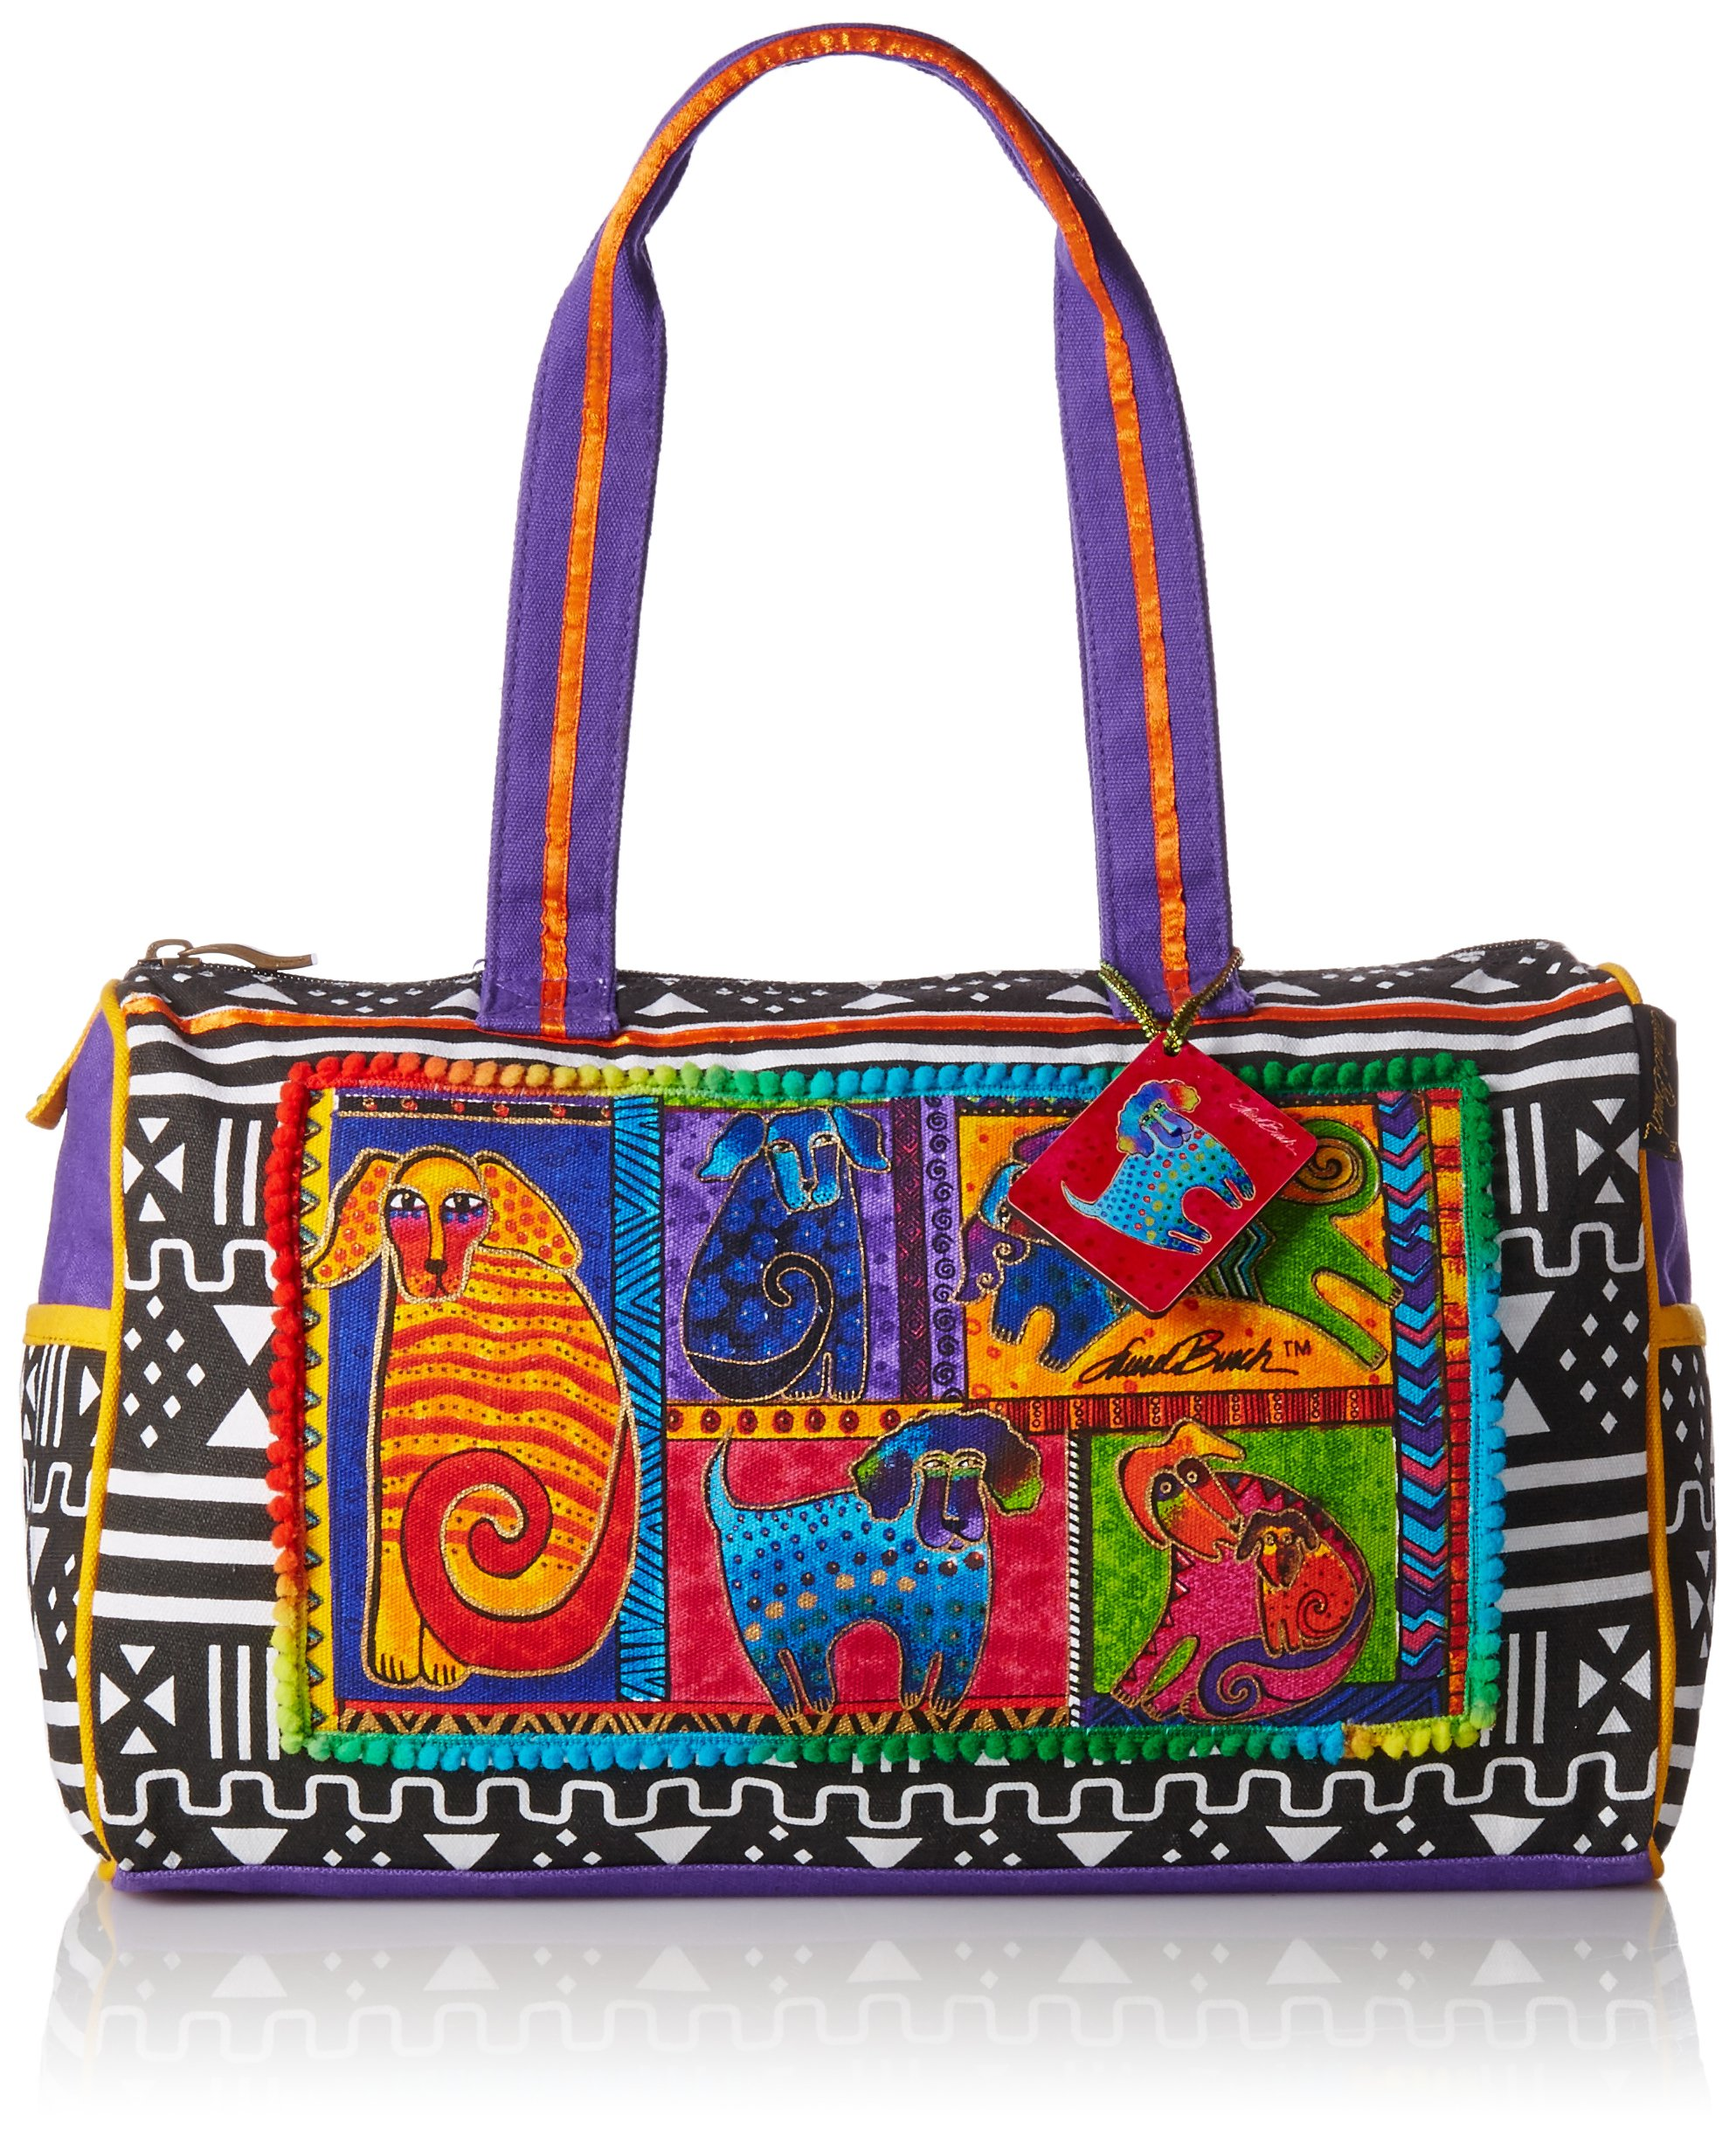 Laurel Burch Medium Satchel Zipper Top 15-Inch by 5-Inch by 10-Inch, Dog Tails Patchwork by Laurel Burch